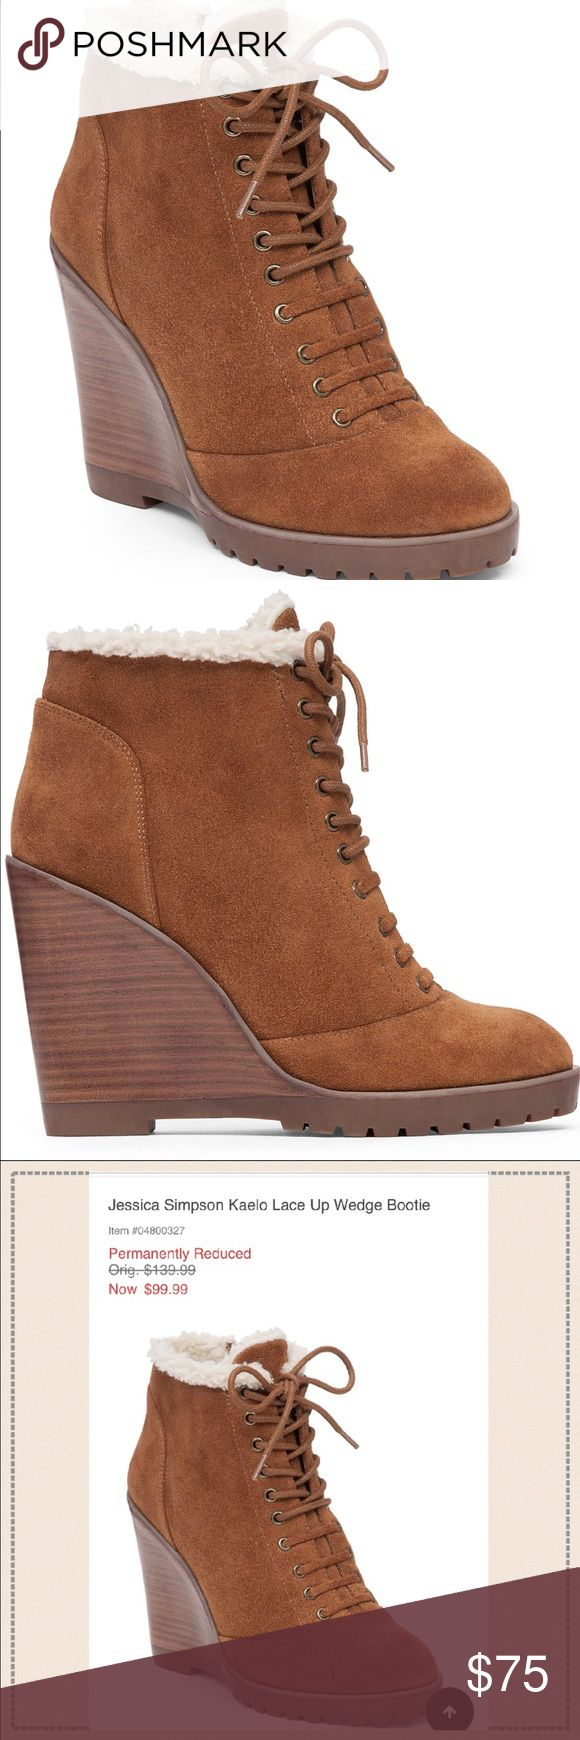 "Brand New! Presently at Dillard's for $99-JS Boots Super cute! Soft interior! Jessica Simpson Wedges! Never worn! Suede Leather Canela brown color. Just purchased less than a month ago...no use for them. 4.2"" Heel height. Jessica Simpson Shoes Ankle Boots & Booties"